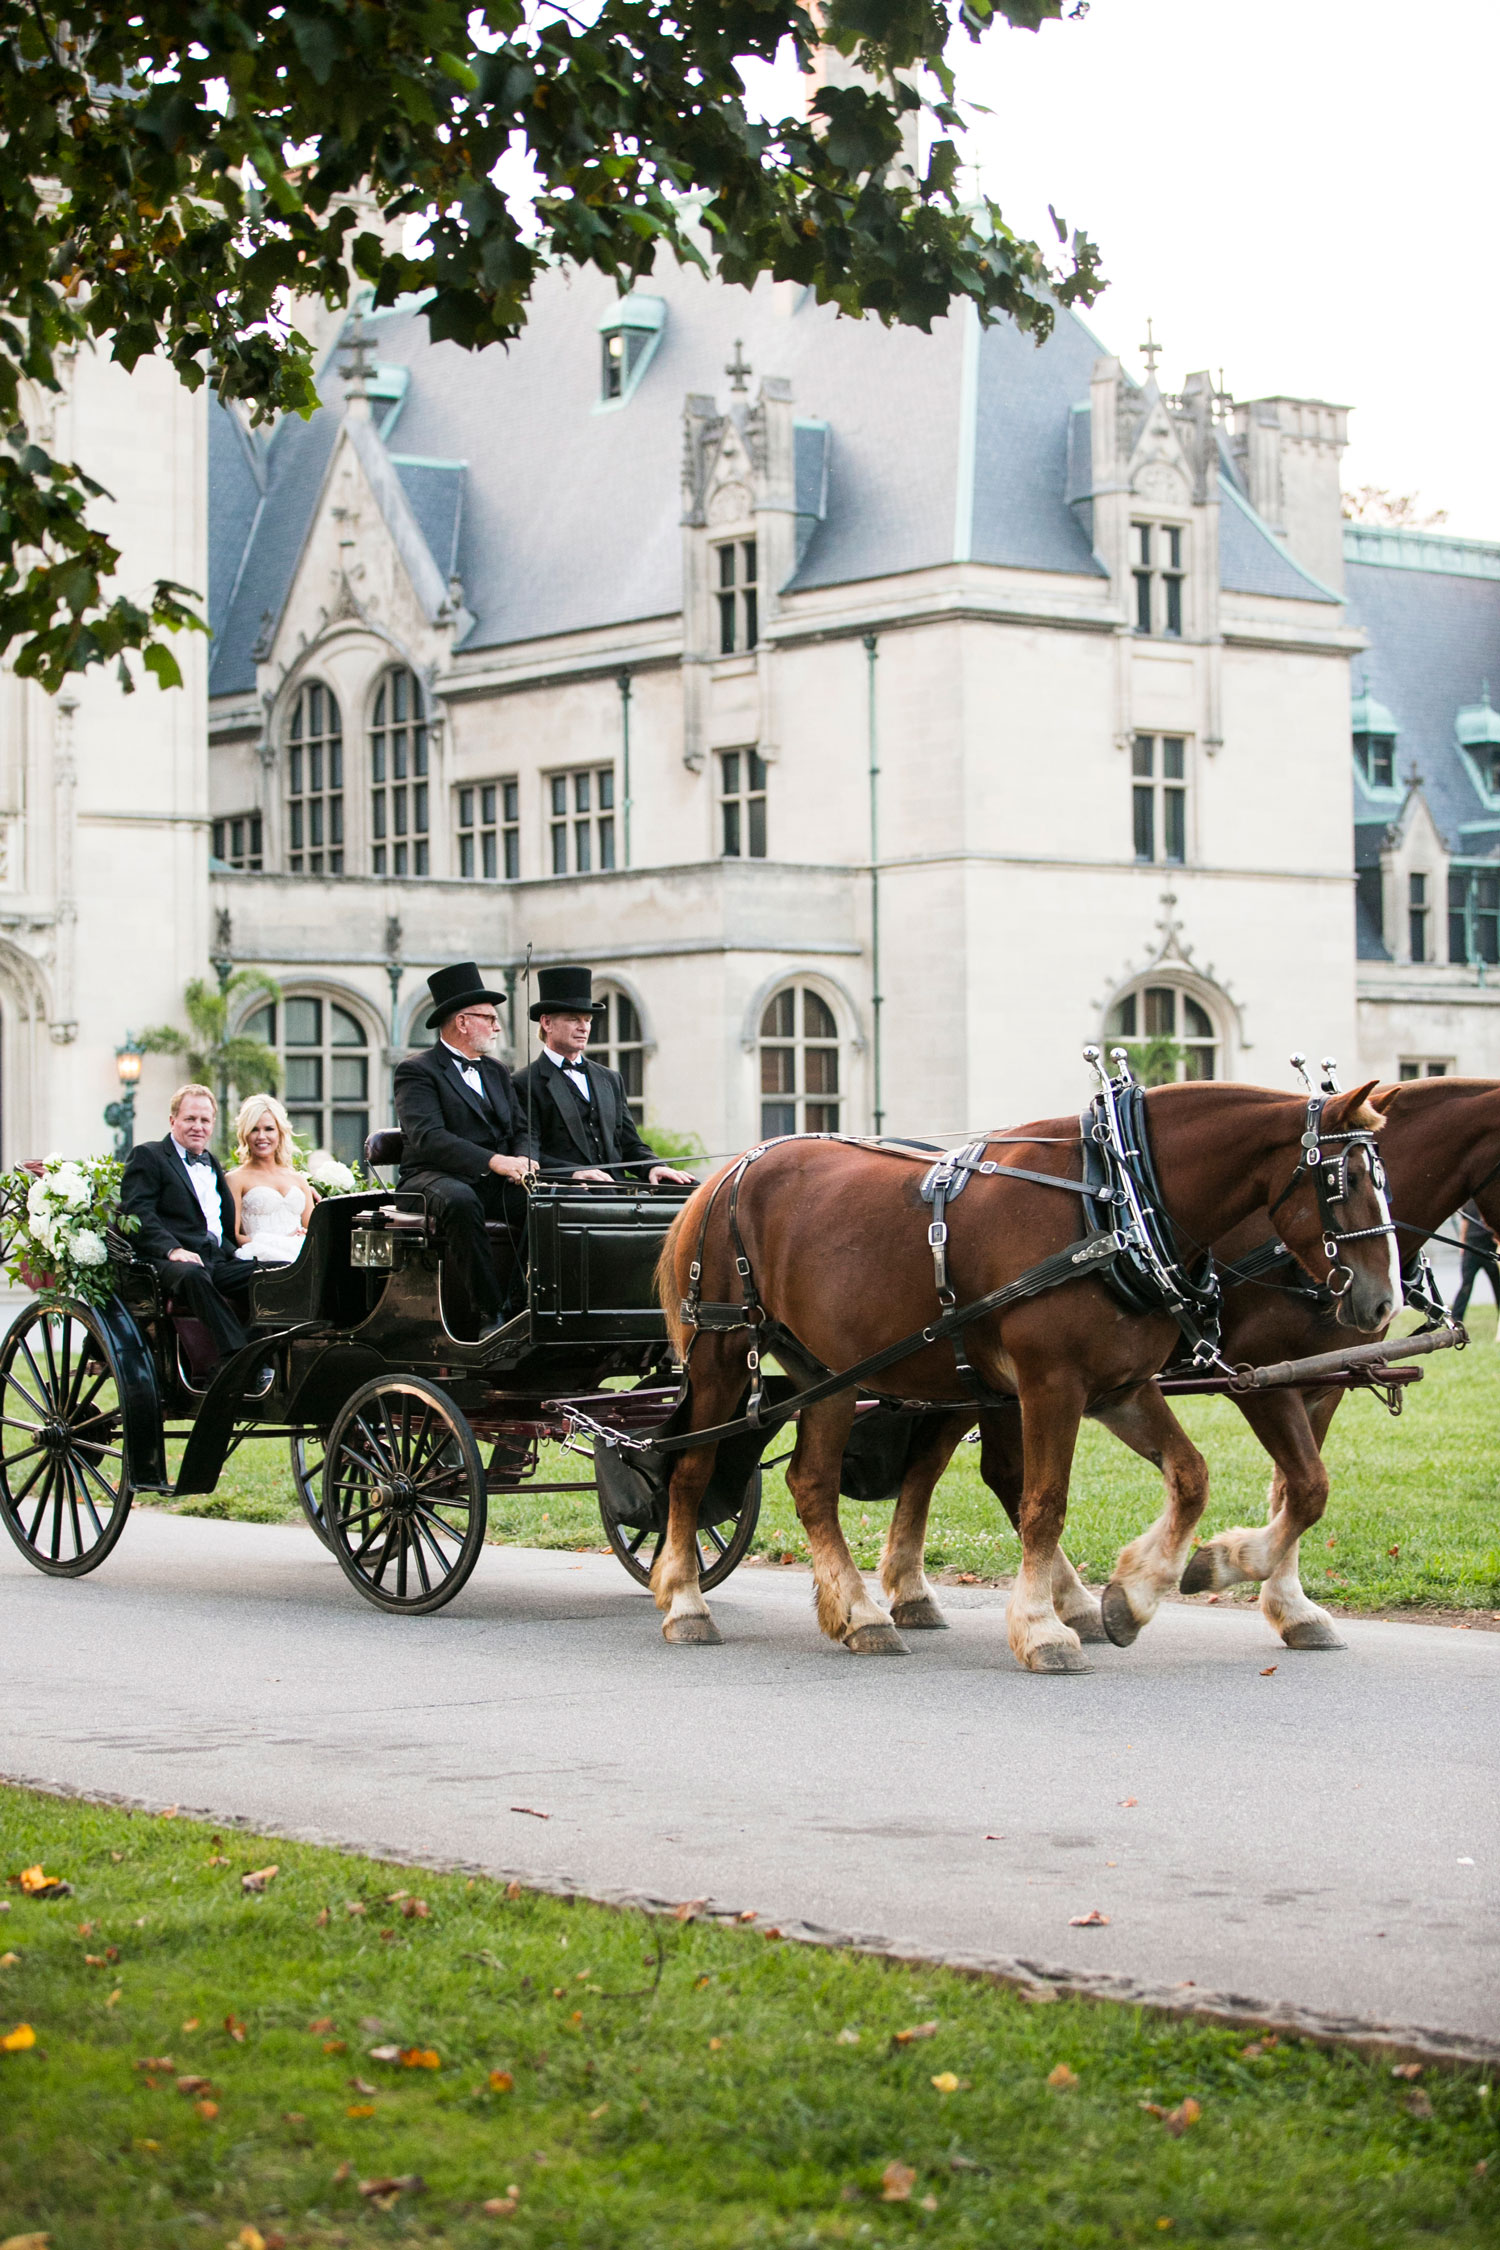 Bride riding horse drawn carriage with father to wedding ceremony royal wedding inspiration